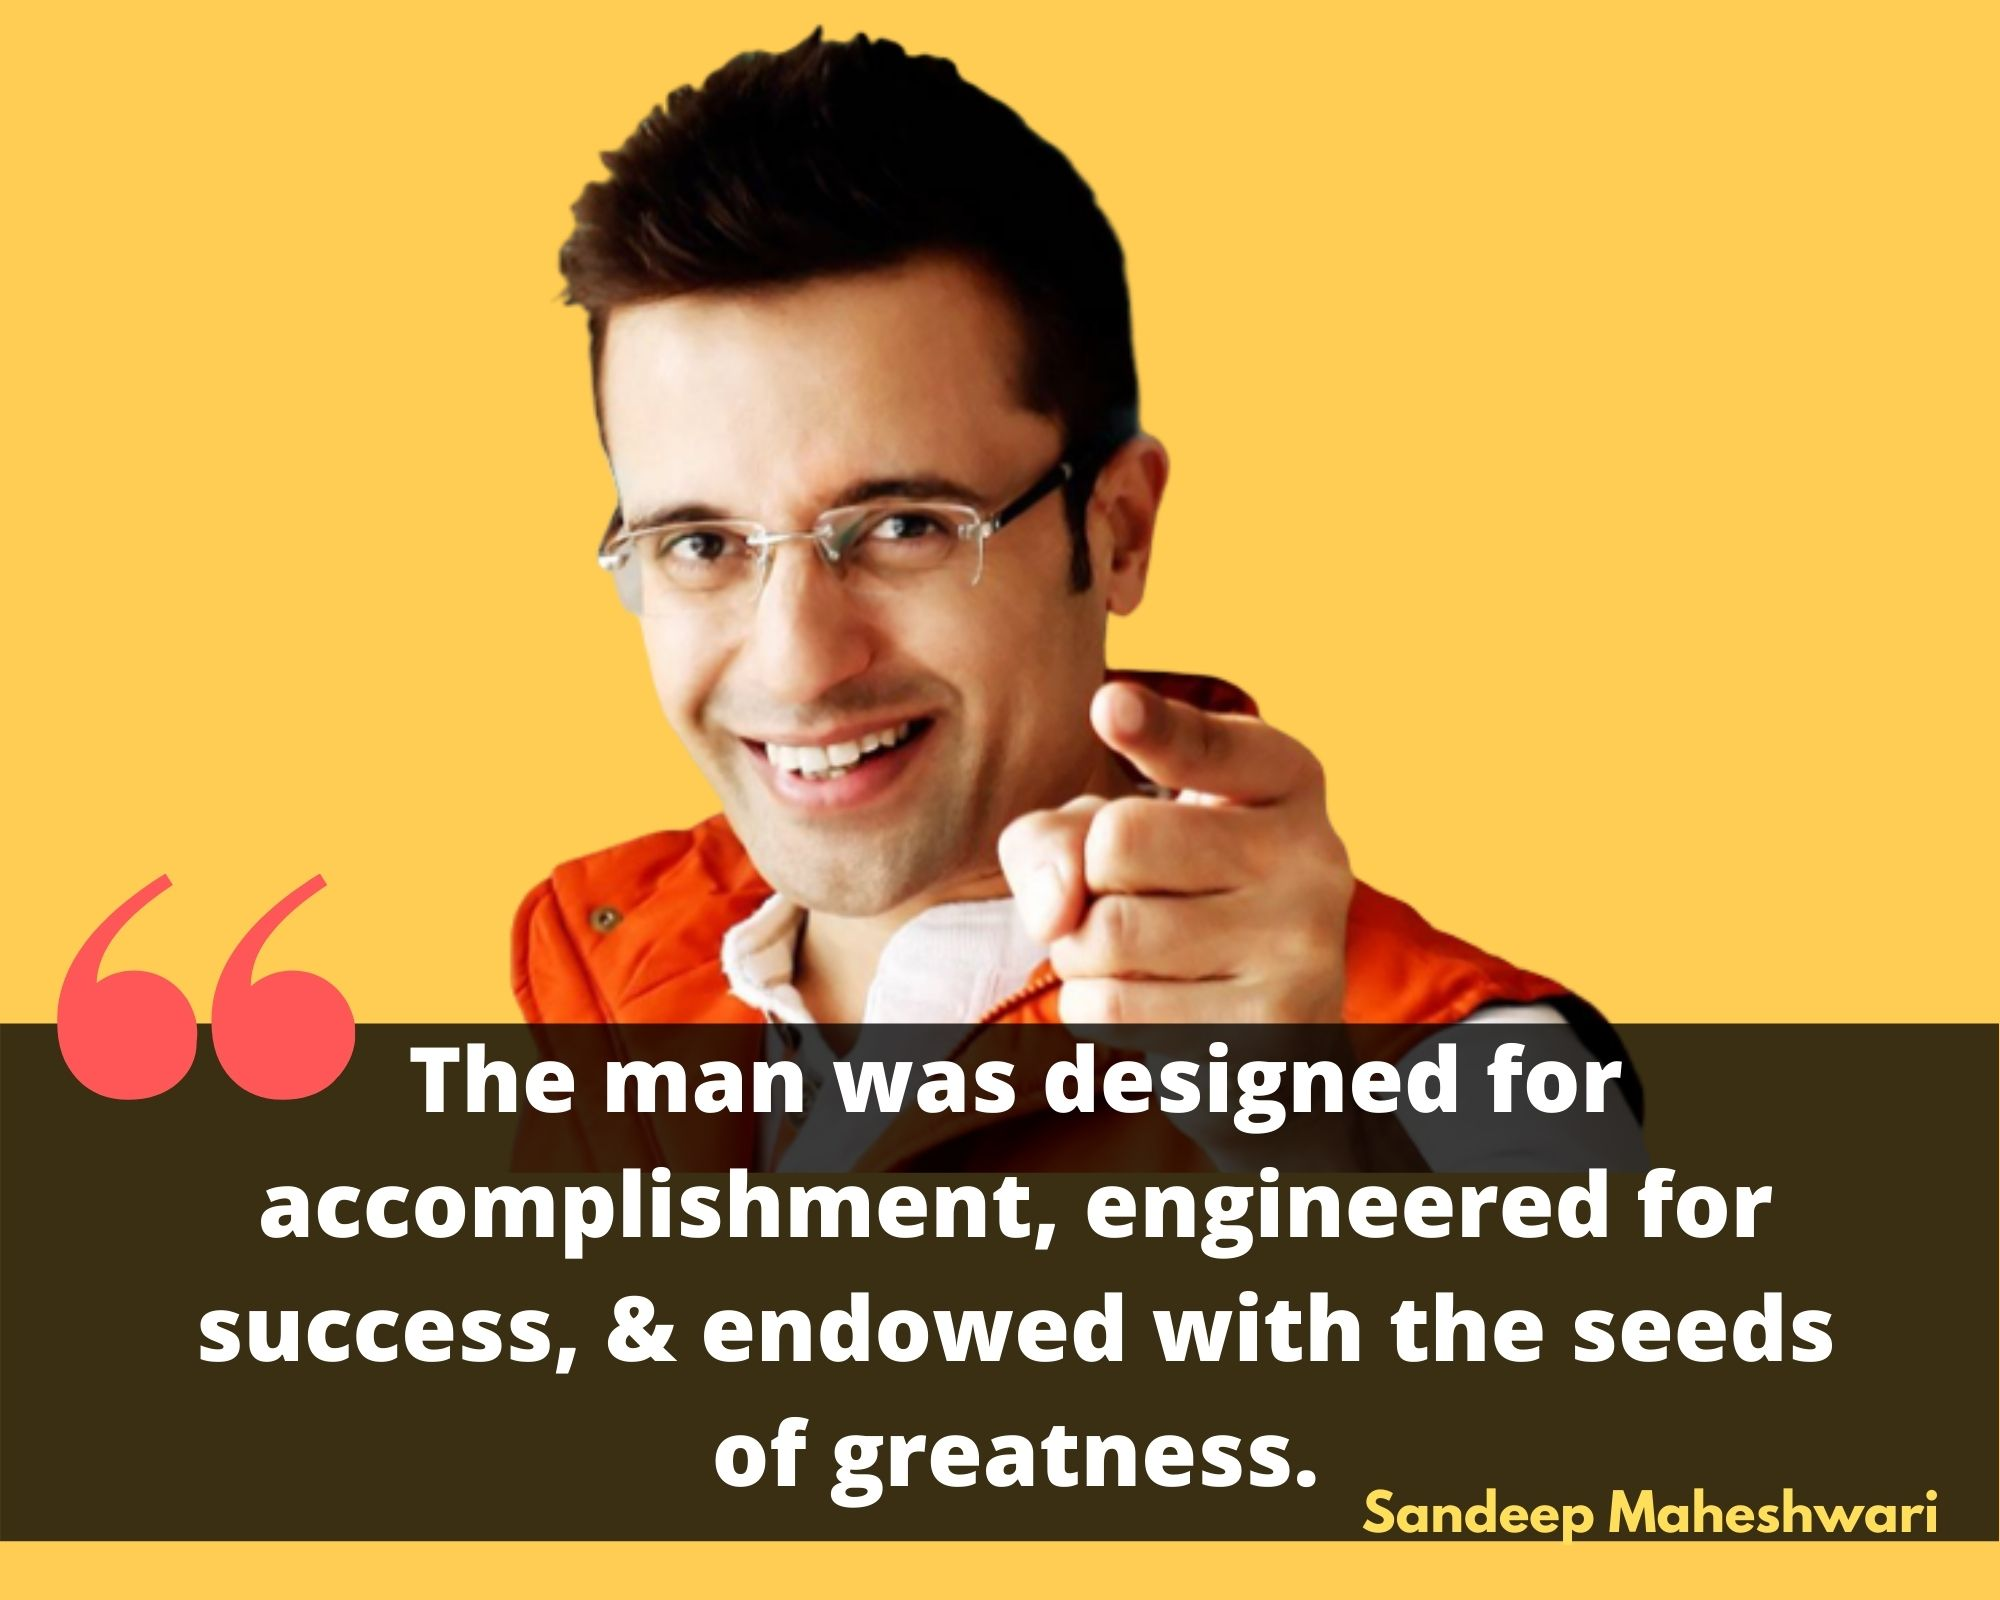 sandeep maheshwari images with quotes